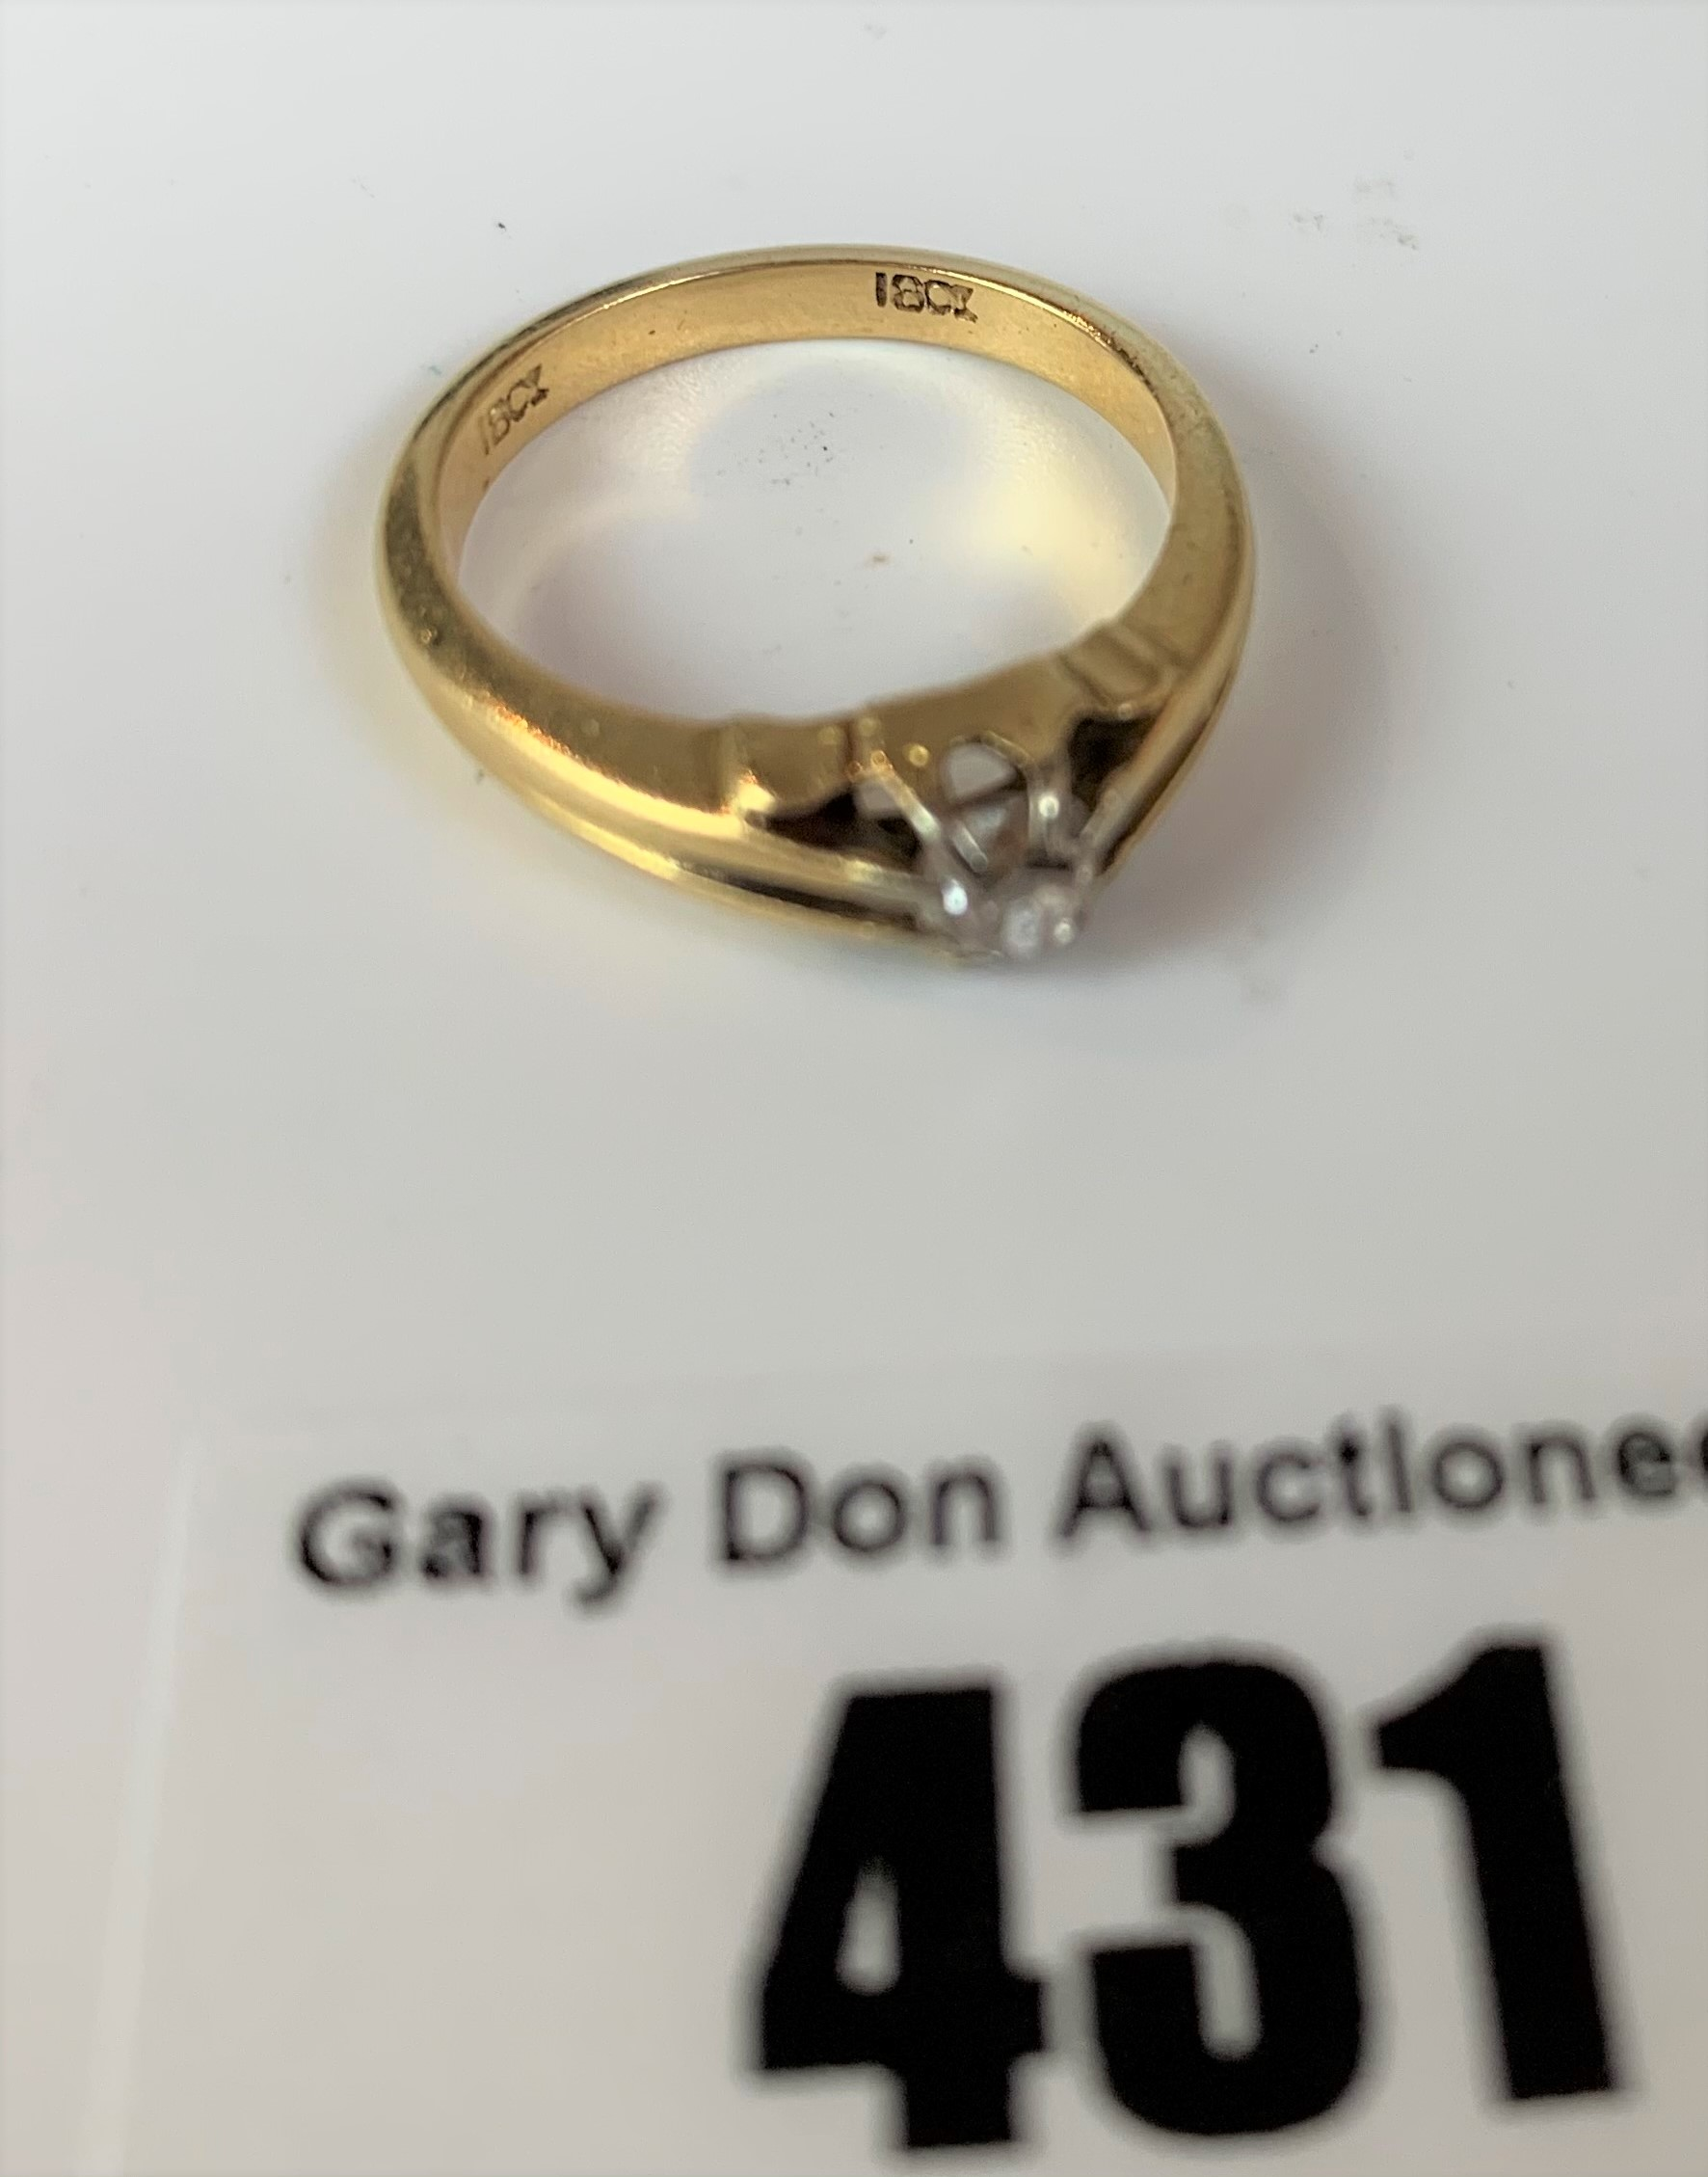 18k gold and diamond solitaire ring, size K, w: 4.1 gms - Image 4 of 5